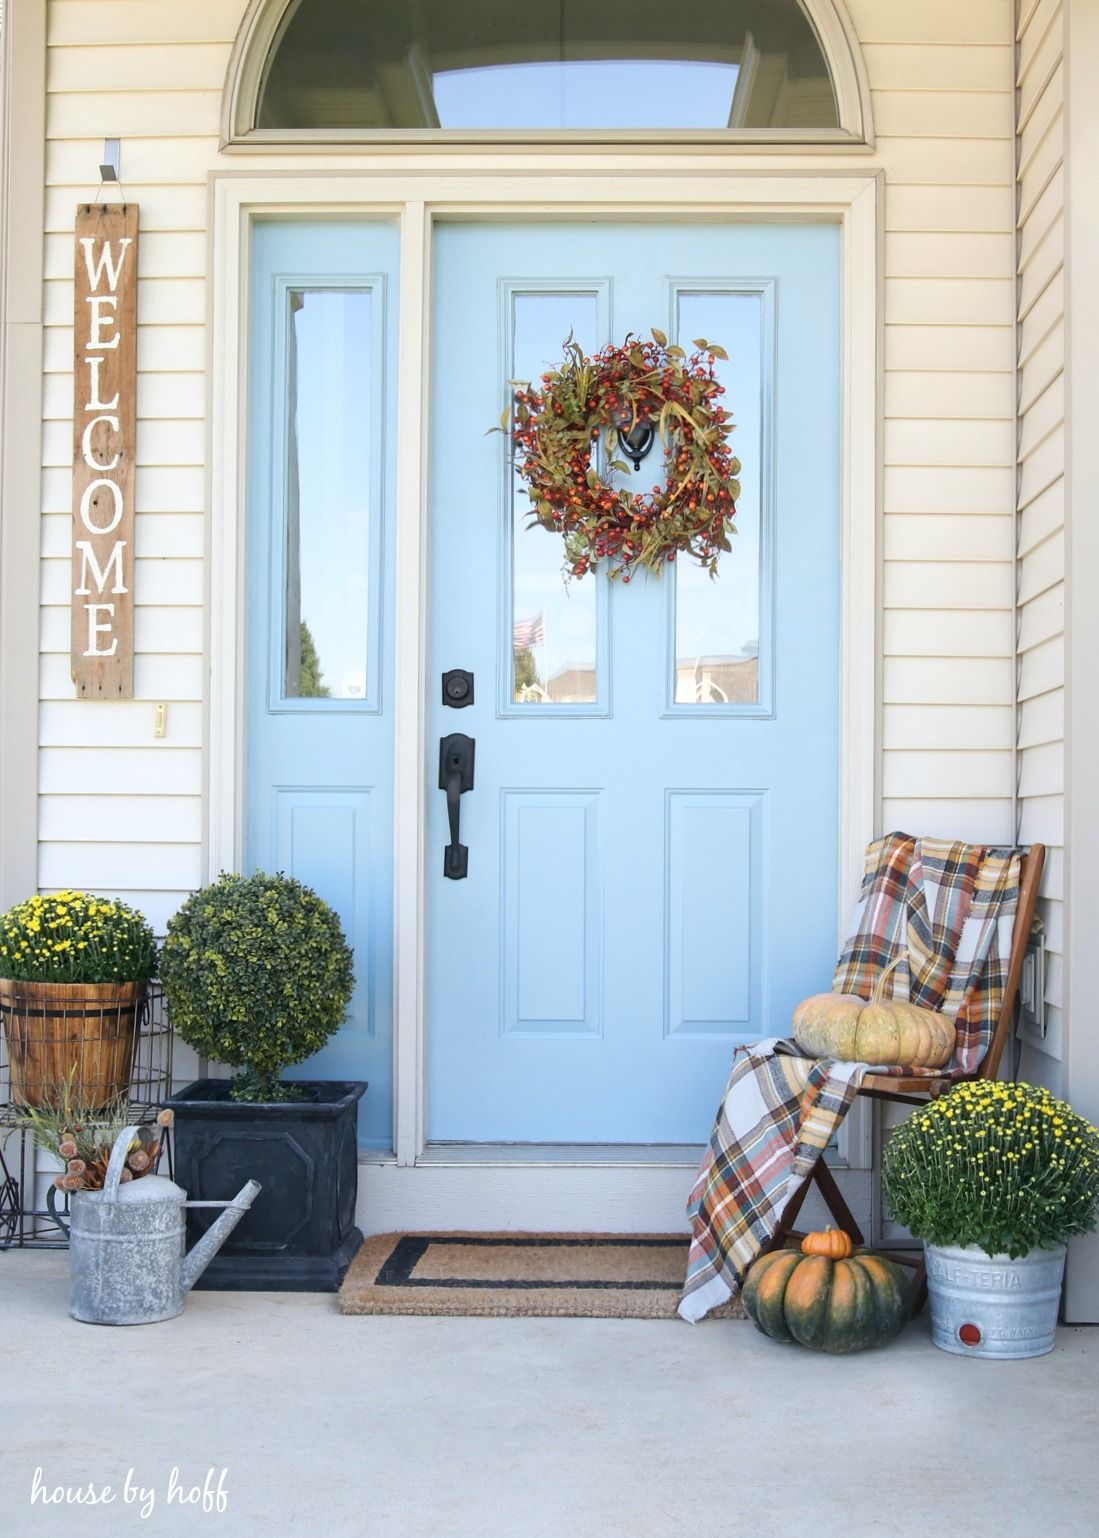 How To Decorate Your Small Front Porch For Fall Via House By Hoff Fall Front Porch Decor Fall Porch Beautiful Front Doors